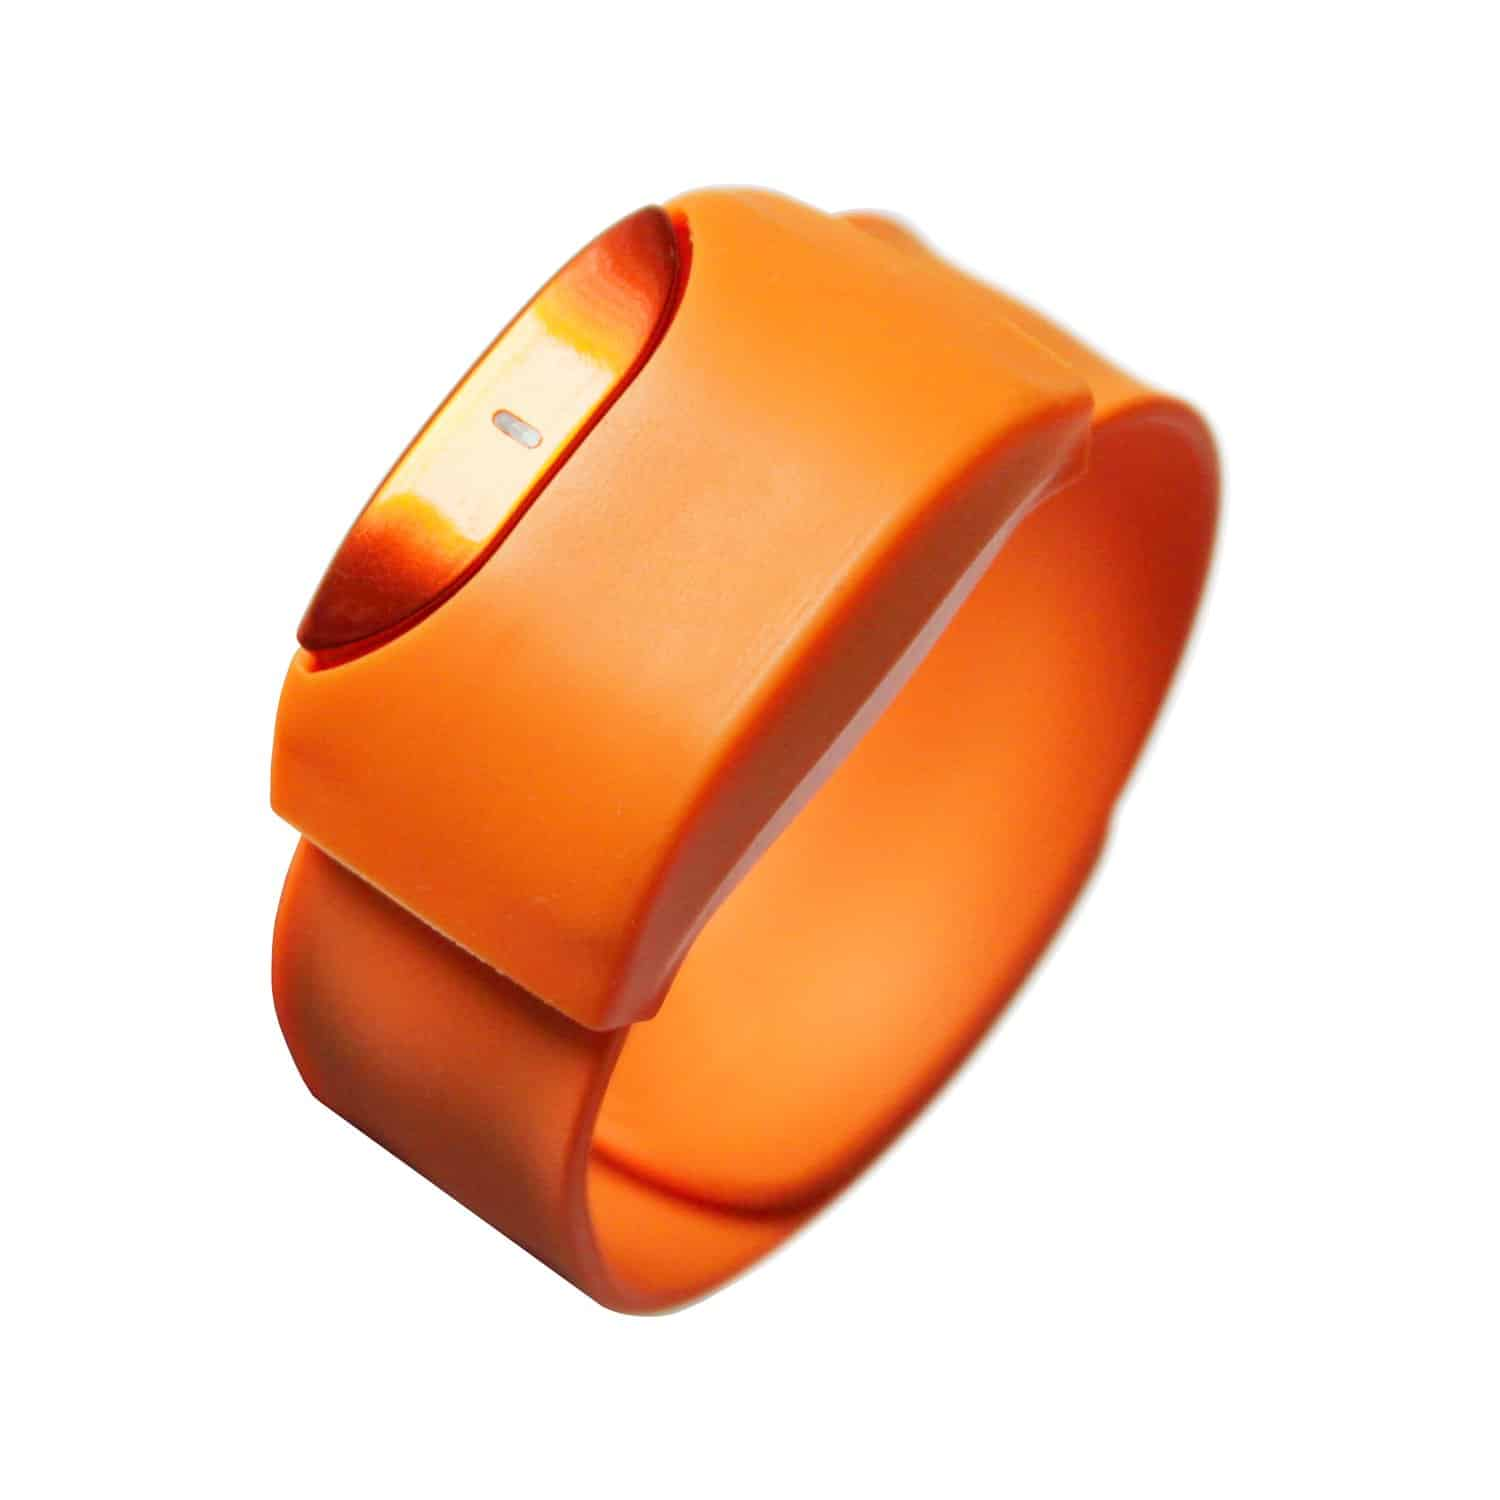 Moff Band Wearable Smart Toy 2